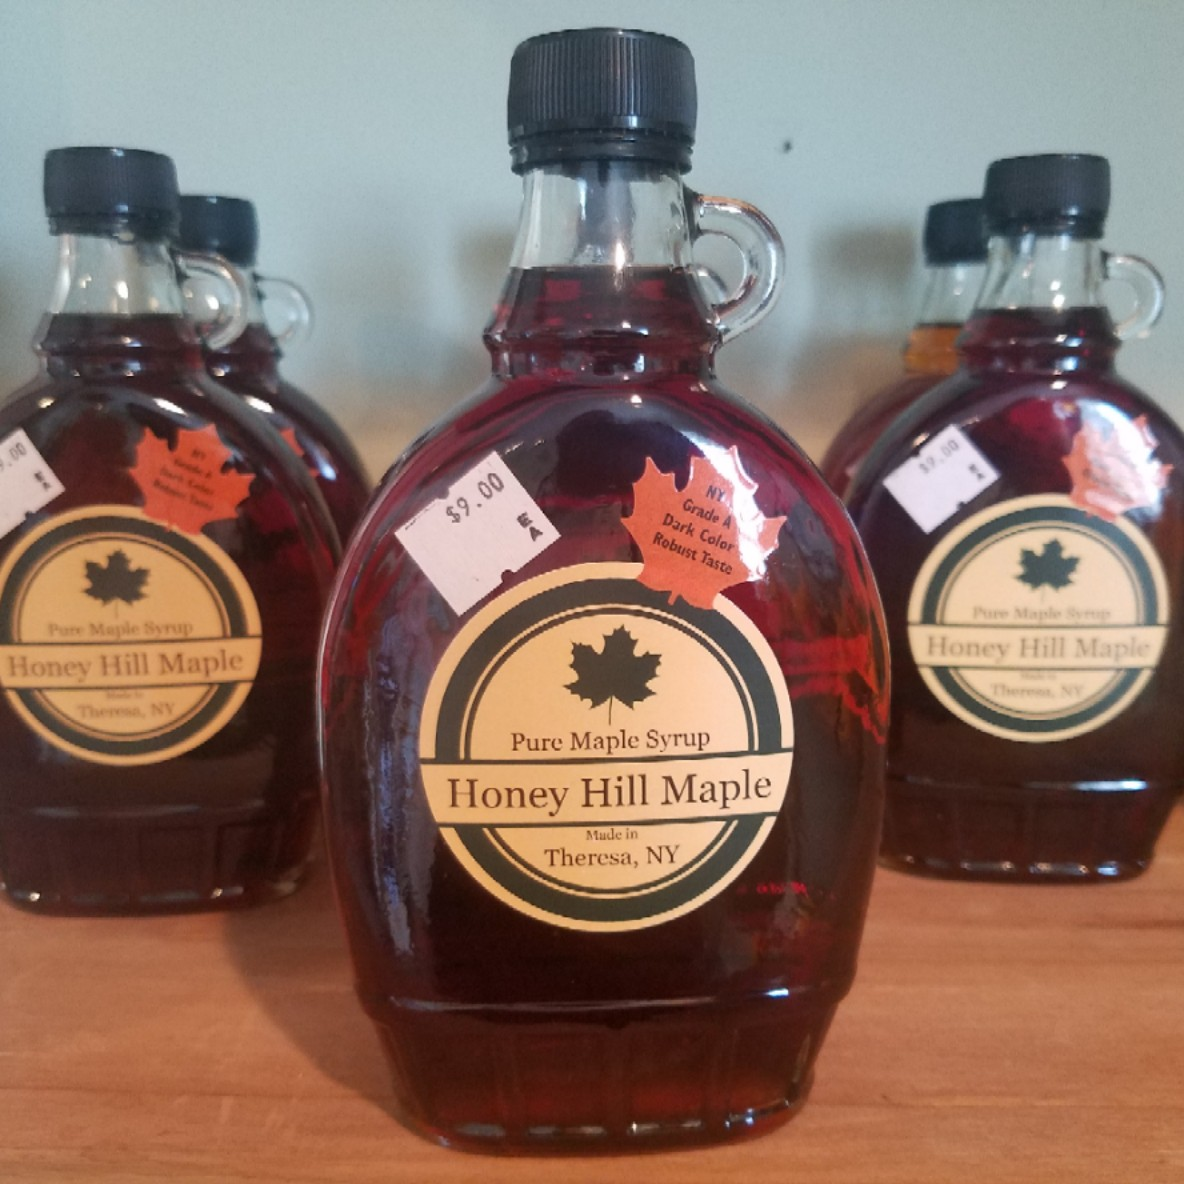 Honey Hill Maple Syrup